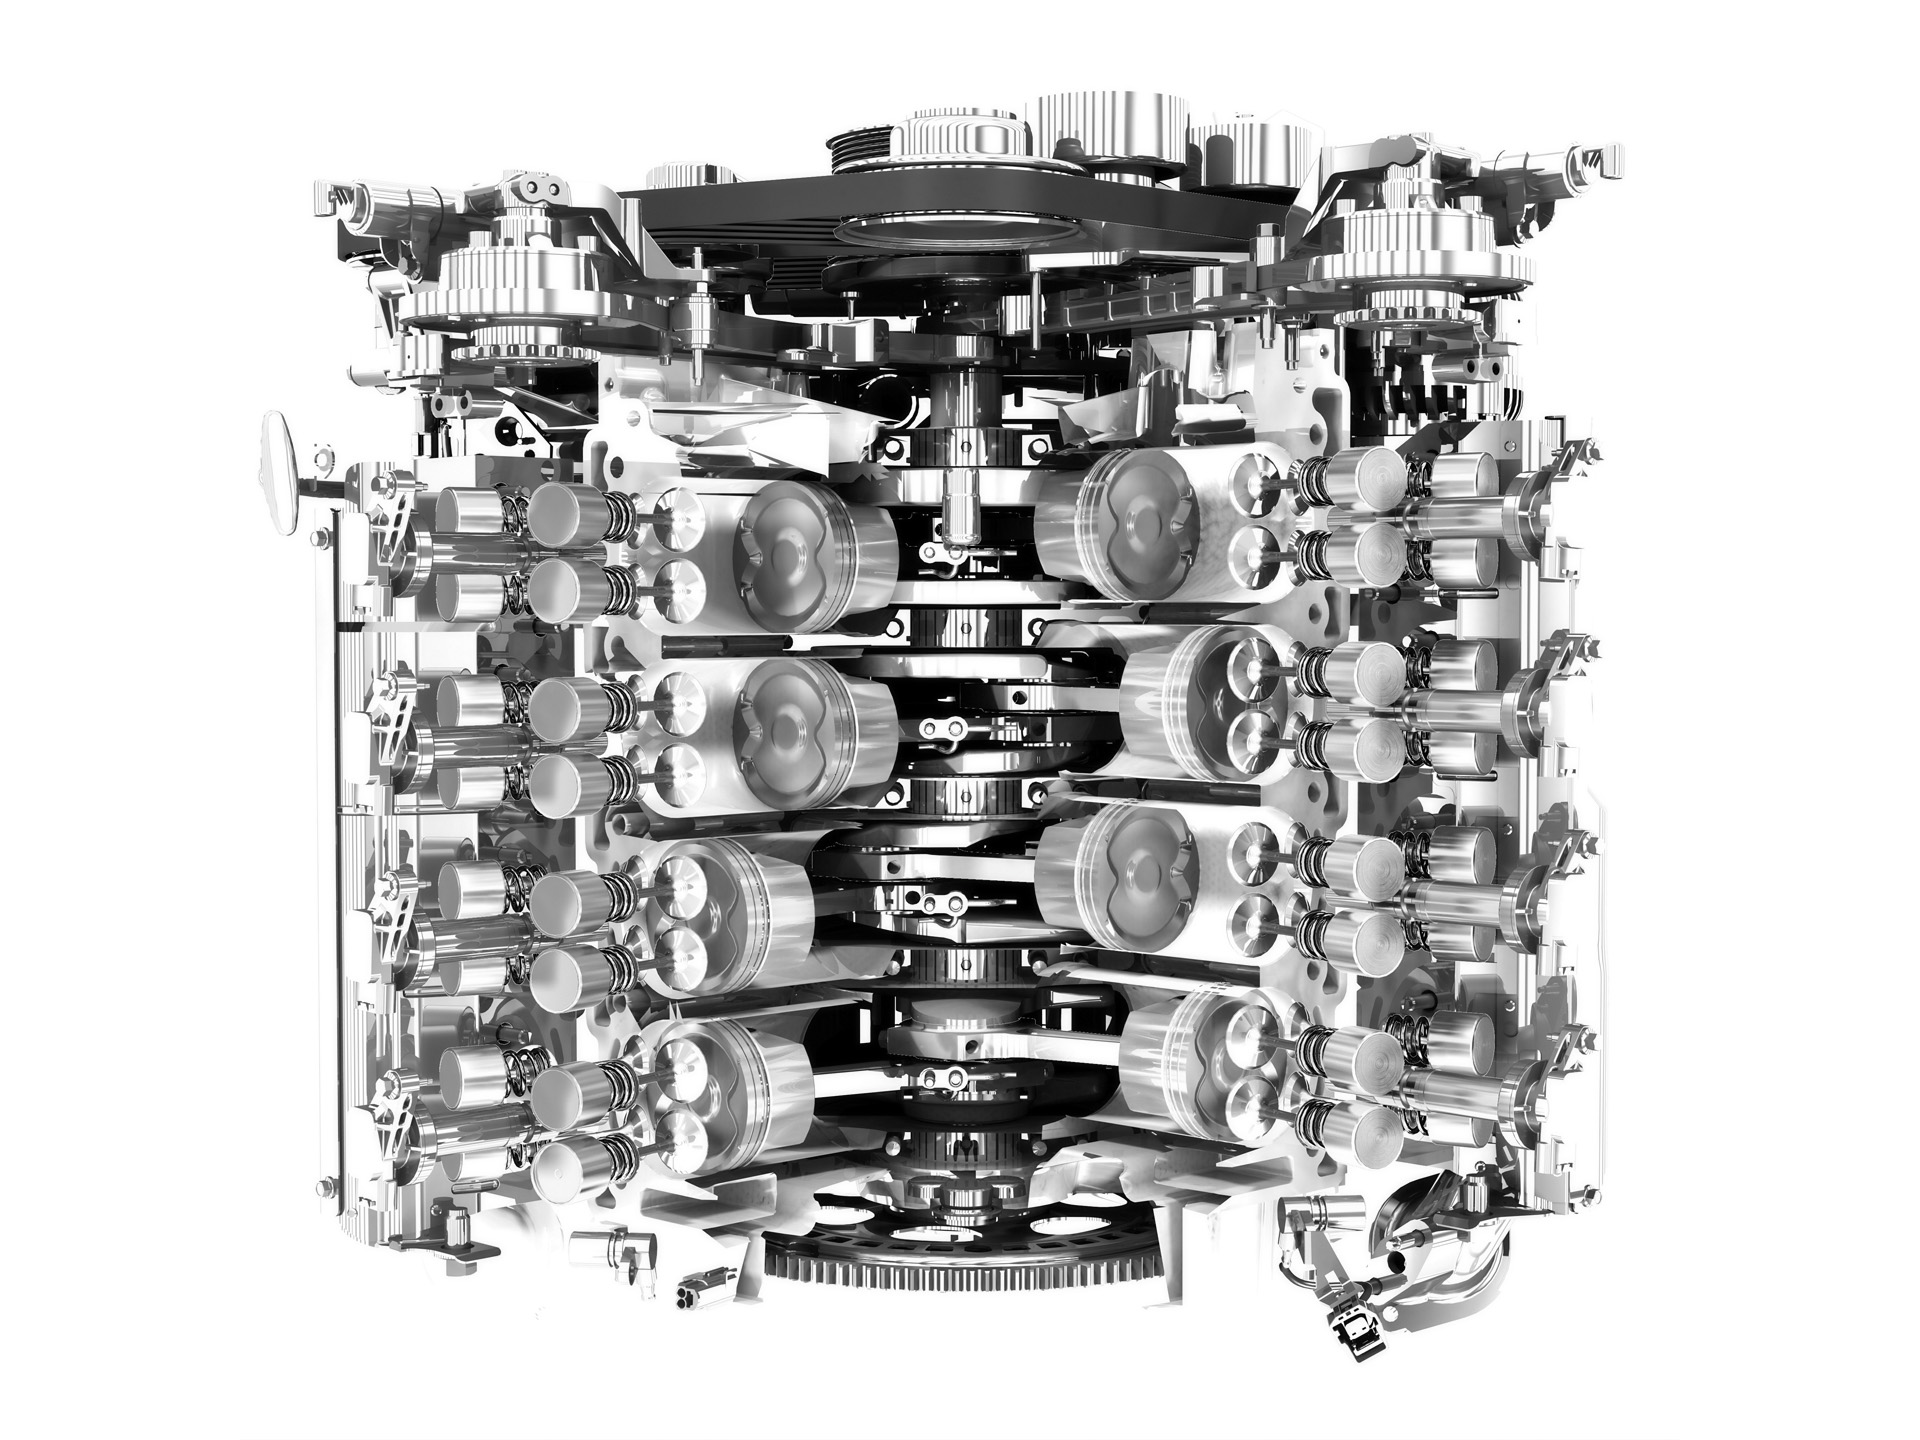 Sample U0100 Engine